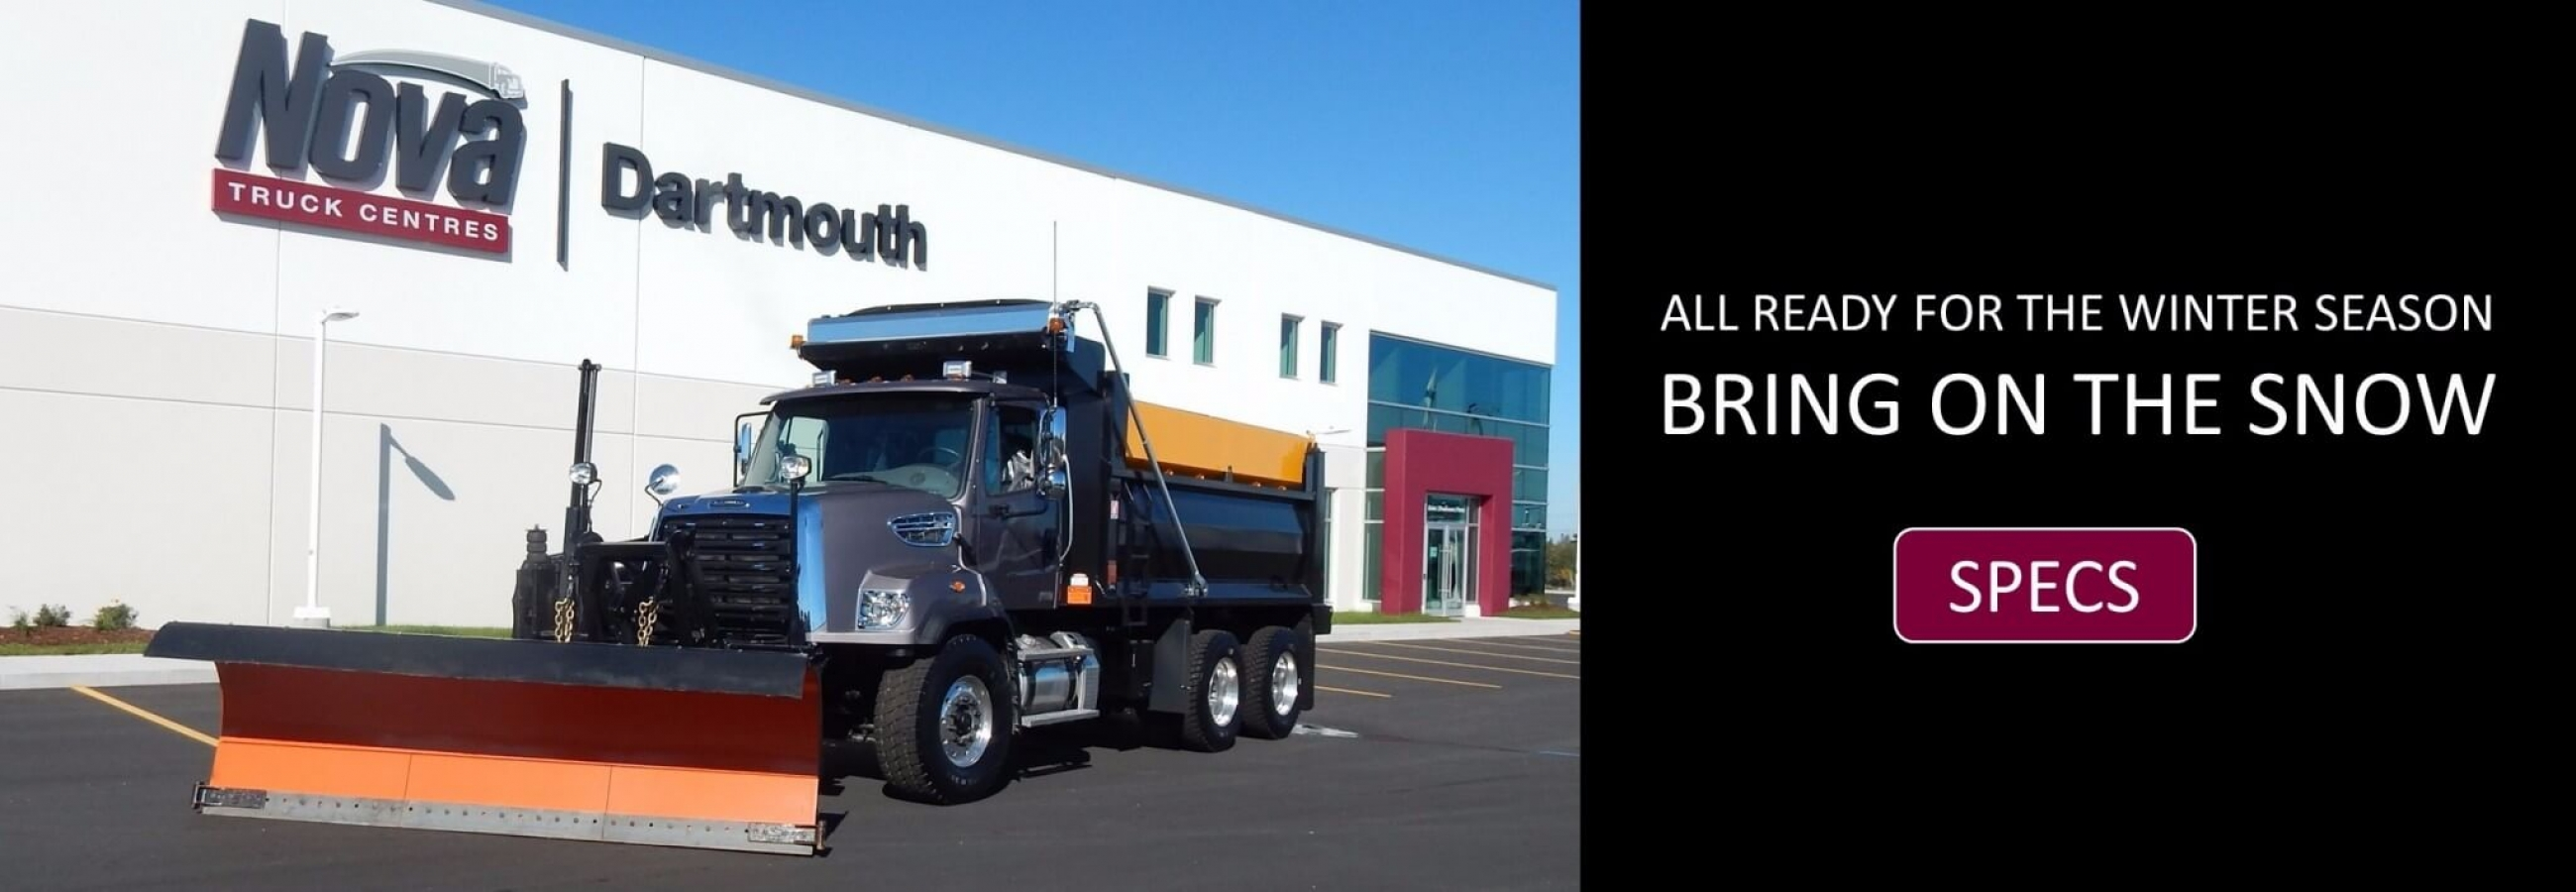 2017 Freightliner Snow Plow - Ready for winter Season!